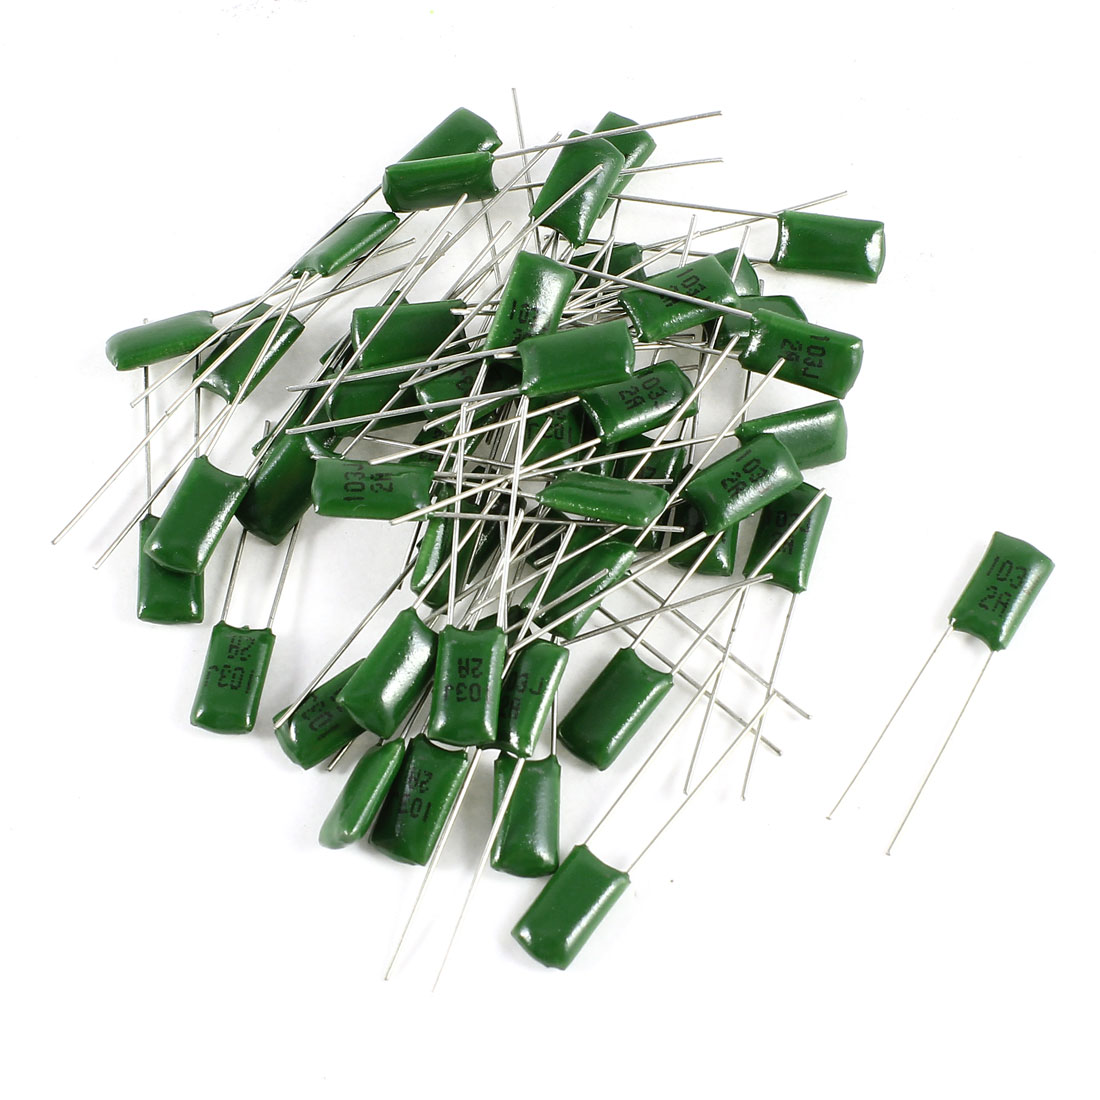 50 Pcs Radial Leads Polyester Film Cap Capacitance Capacitors Green 2A103J 100V 10nF 5%